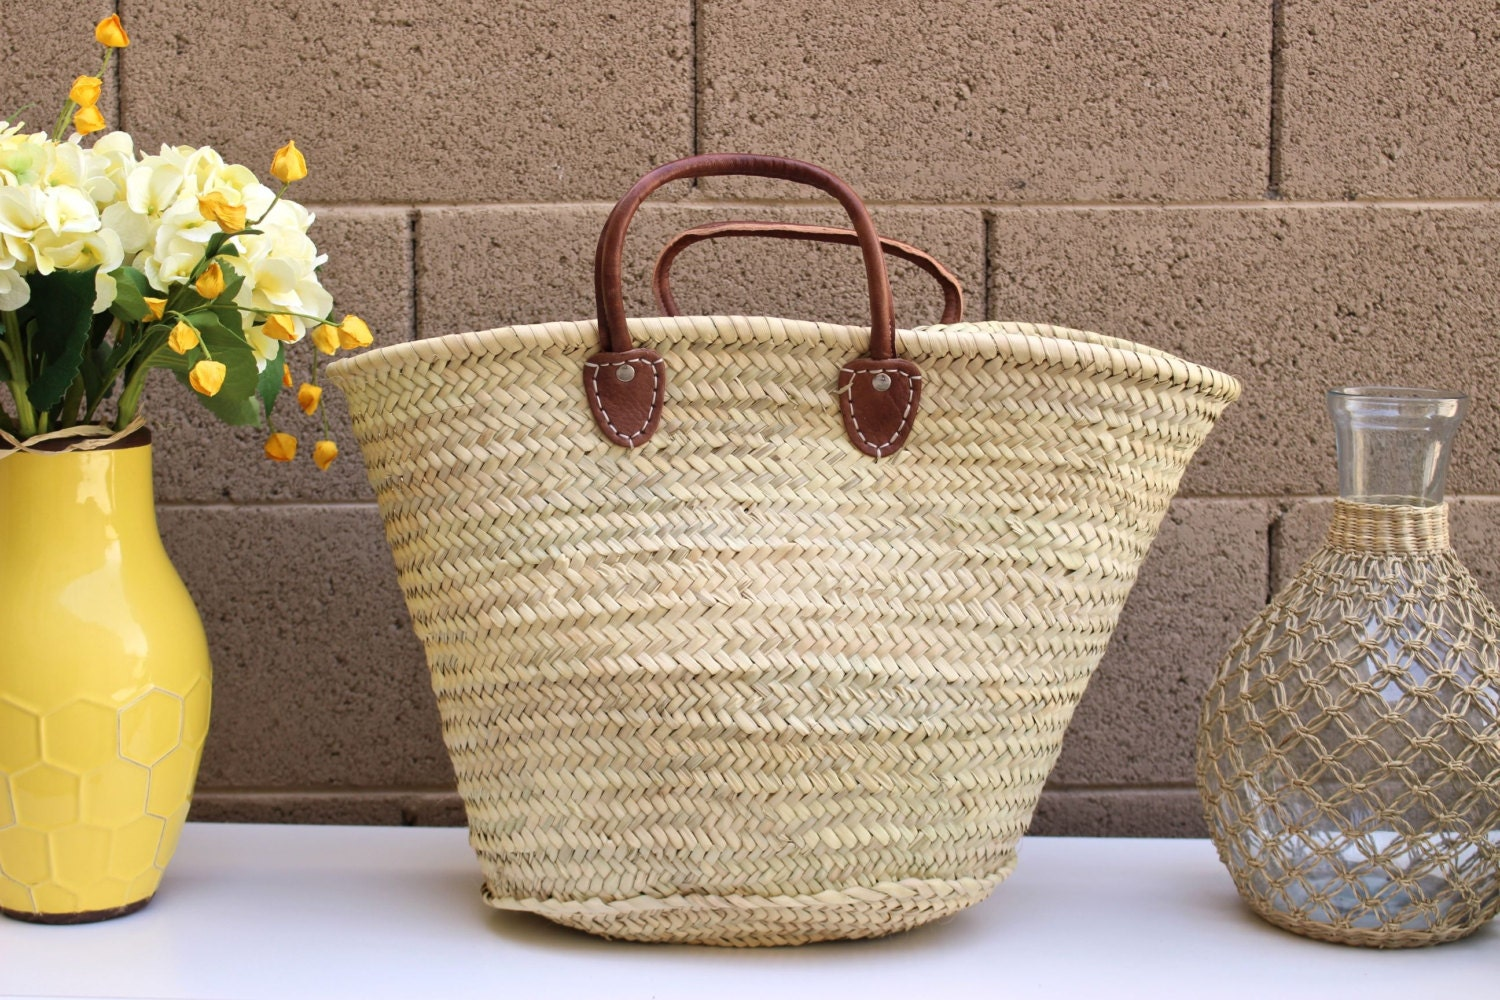 Short Handle French Market Tote French Basket Straw Beach